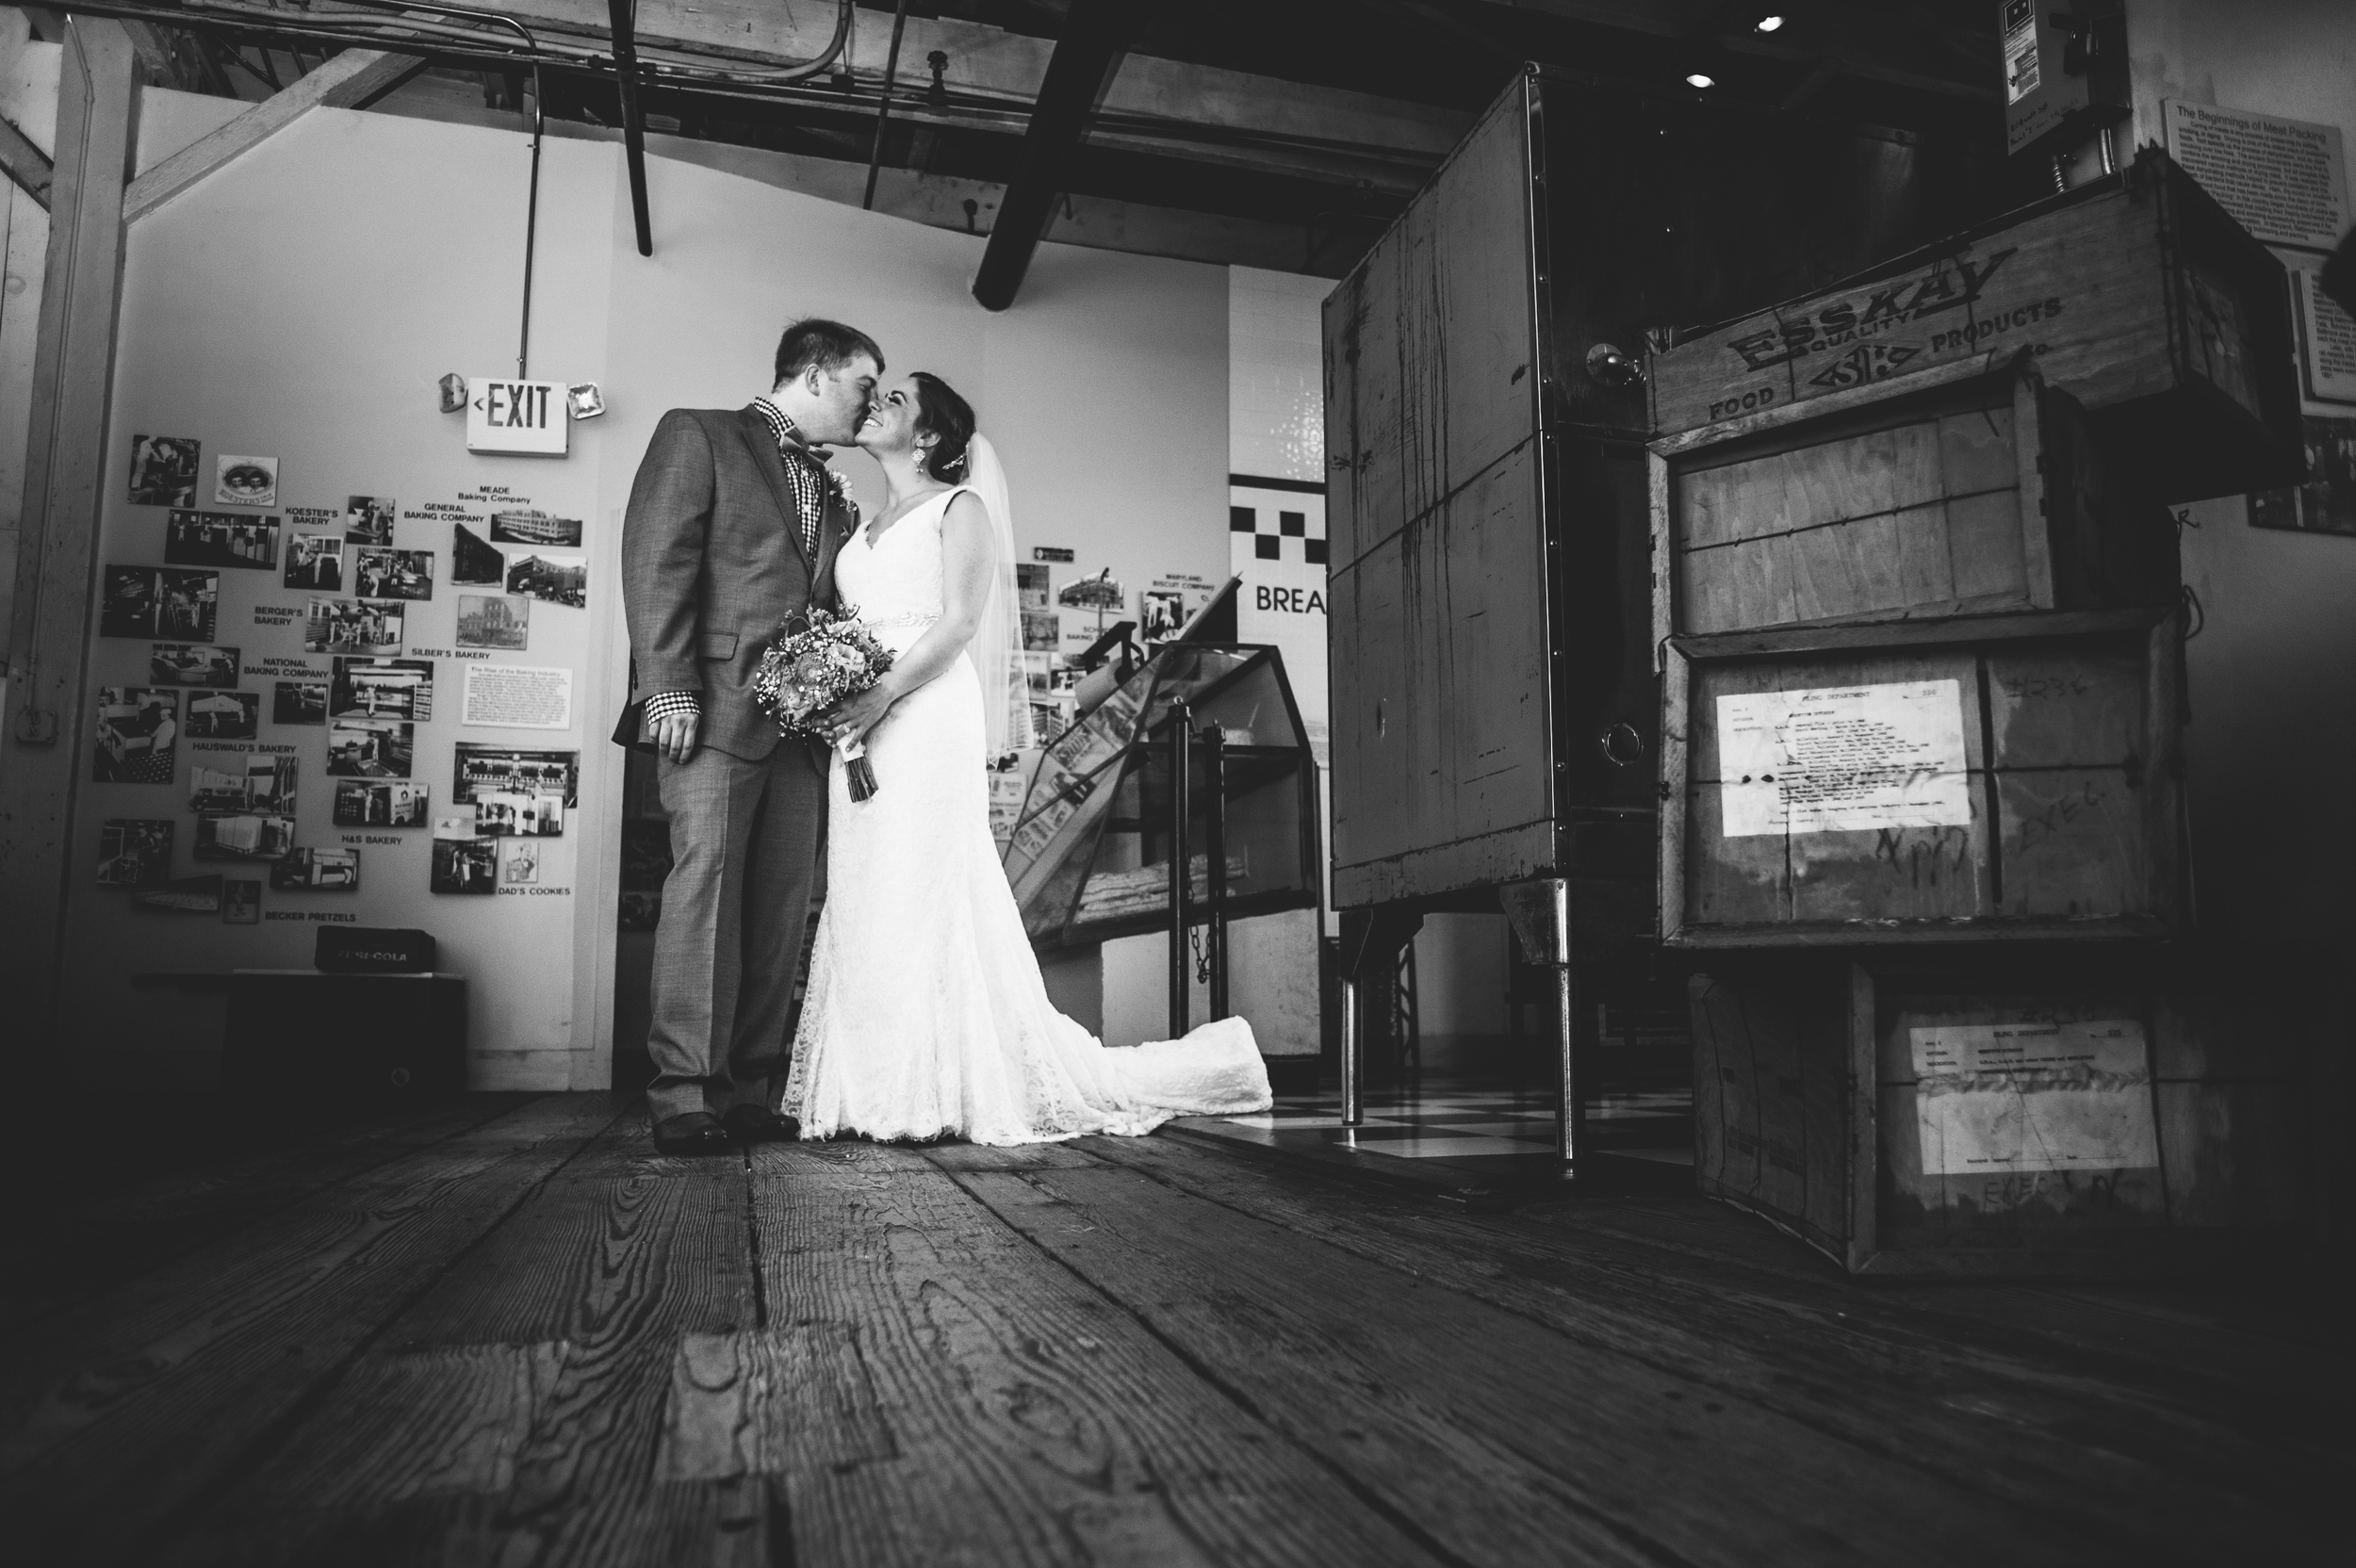 Baltimore Museum of Industry Wedding by Mantas Kubilinskas-20.jpg